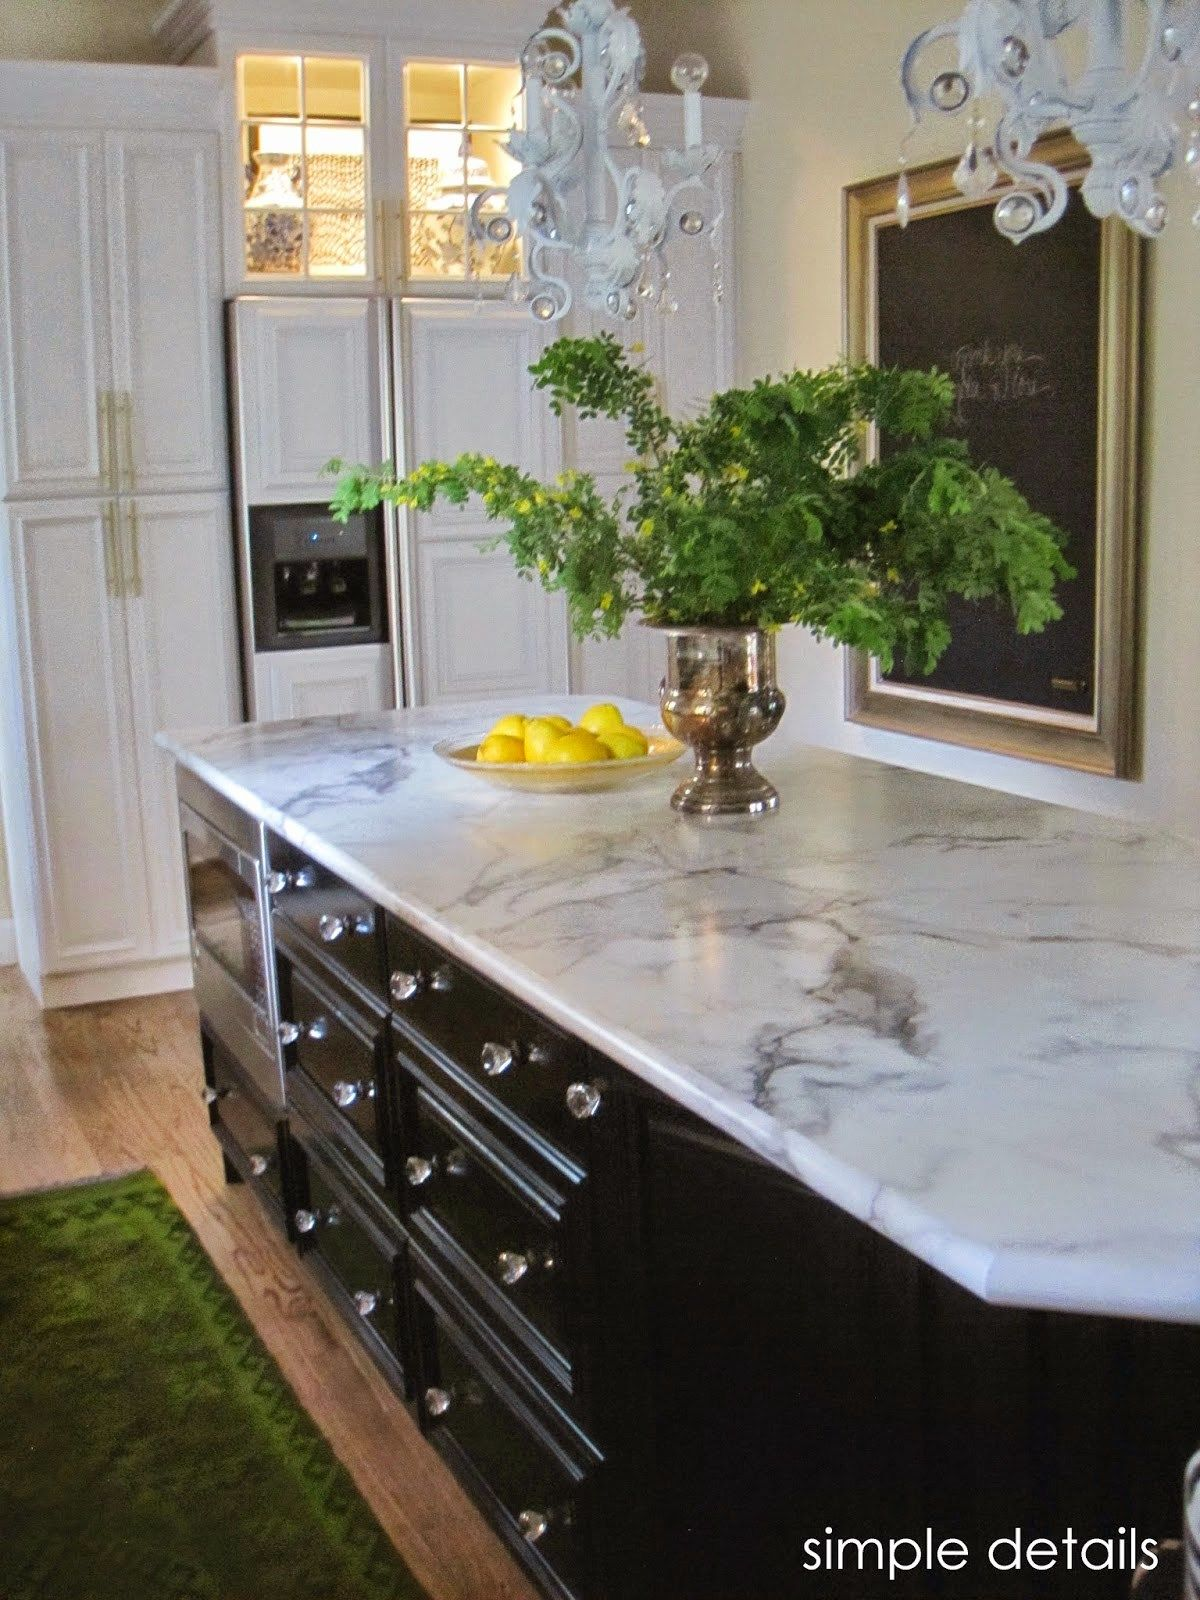 The New Era Of Laminate Countertops And Why They Rock Review Kitchen Remodel Countertops Formica Countertops Laminate Countertops